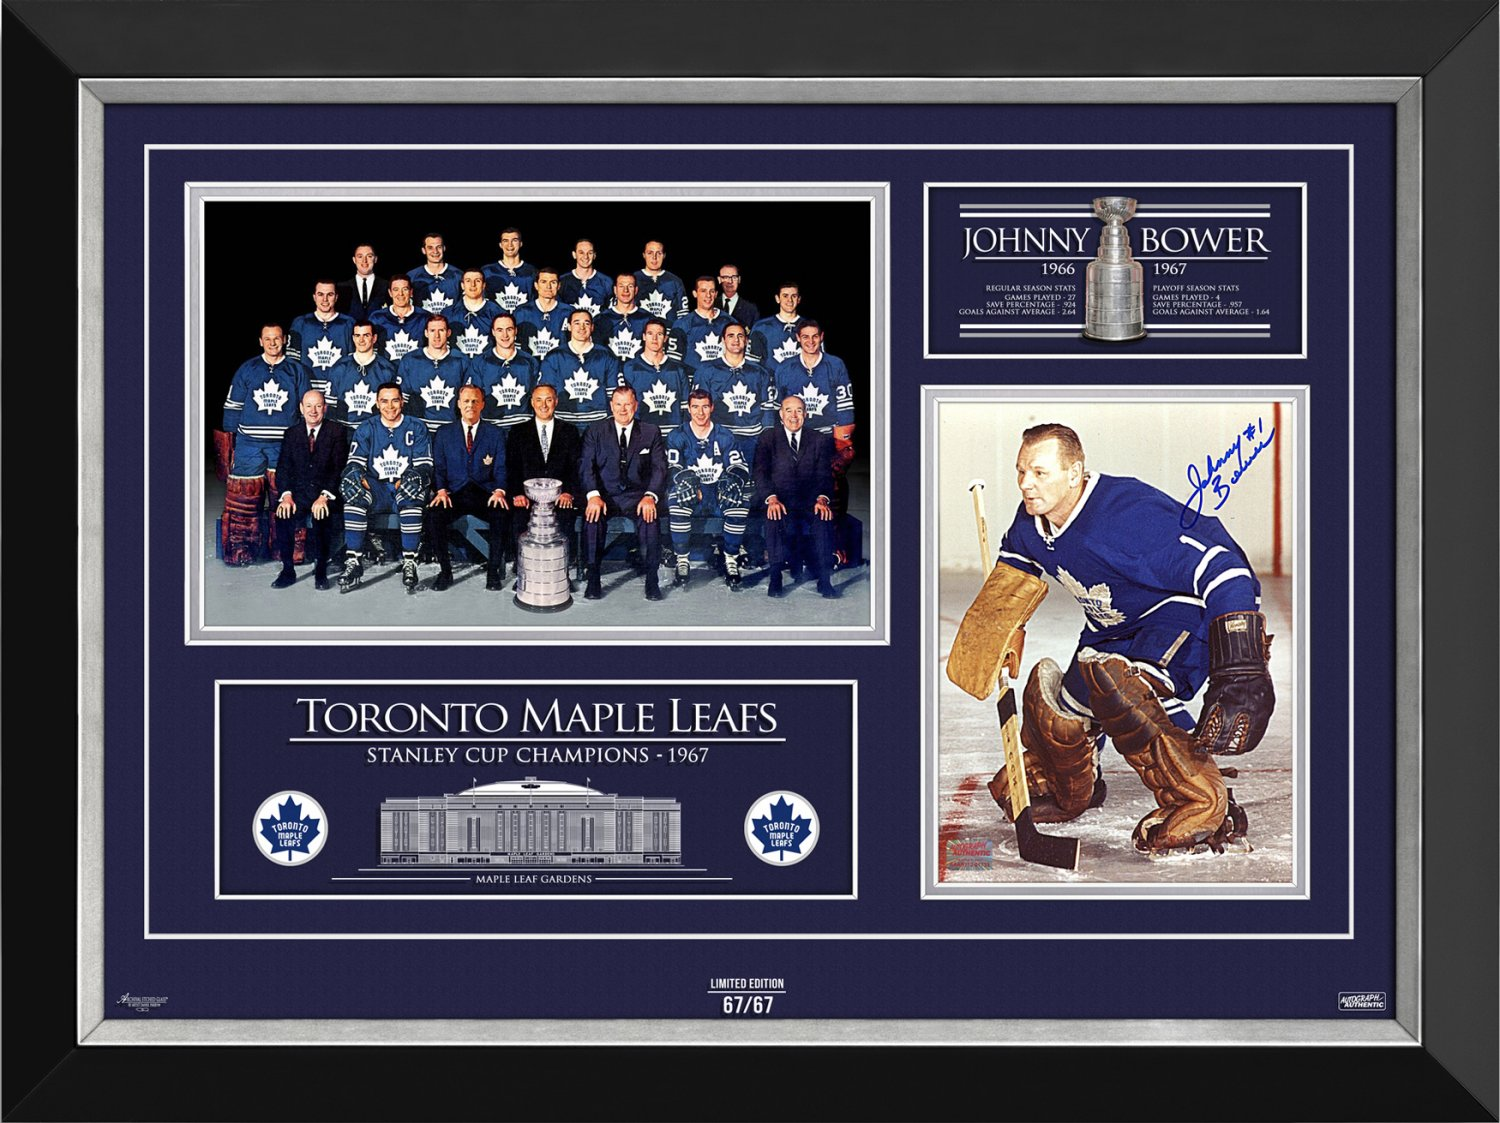 Johnny Bower Signed 1967 Stanley Cup (Blue), Ltd Ed 67/67 - Toronto Maple Leafs